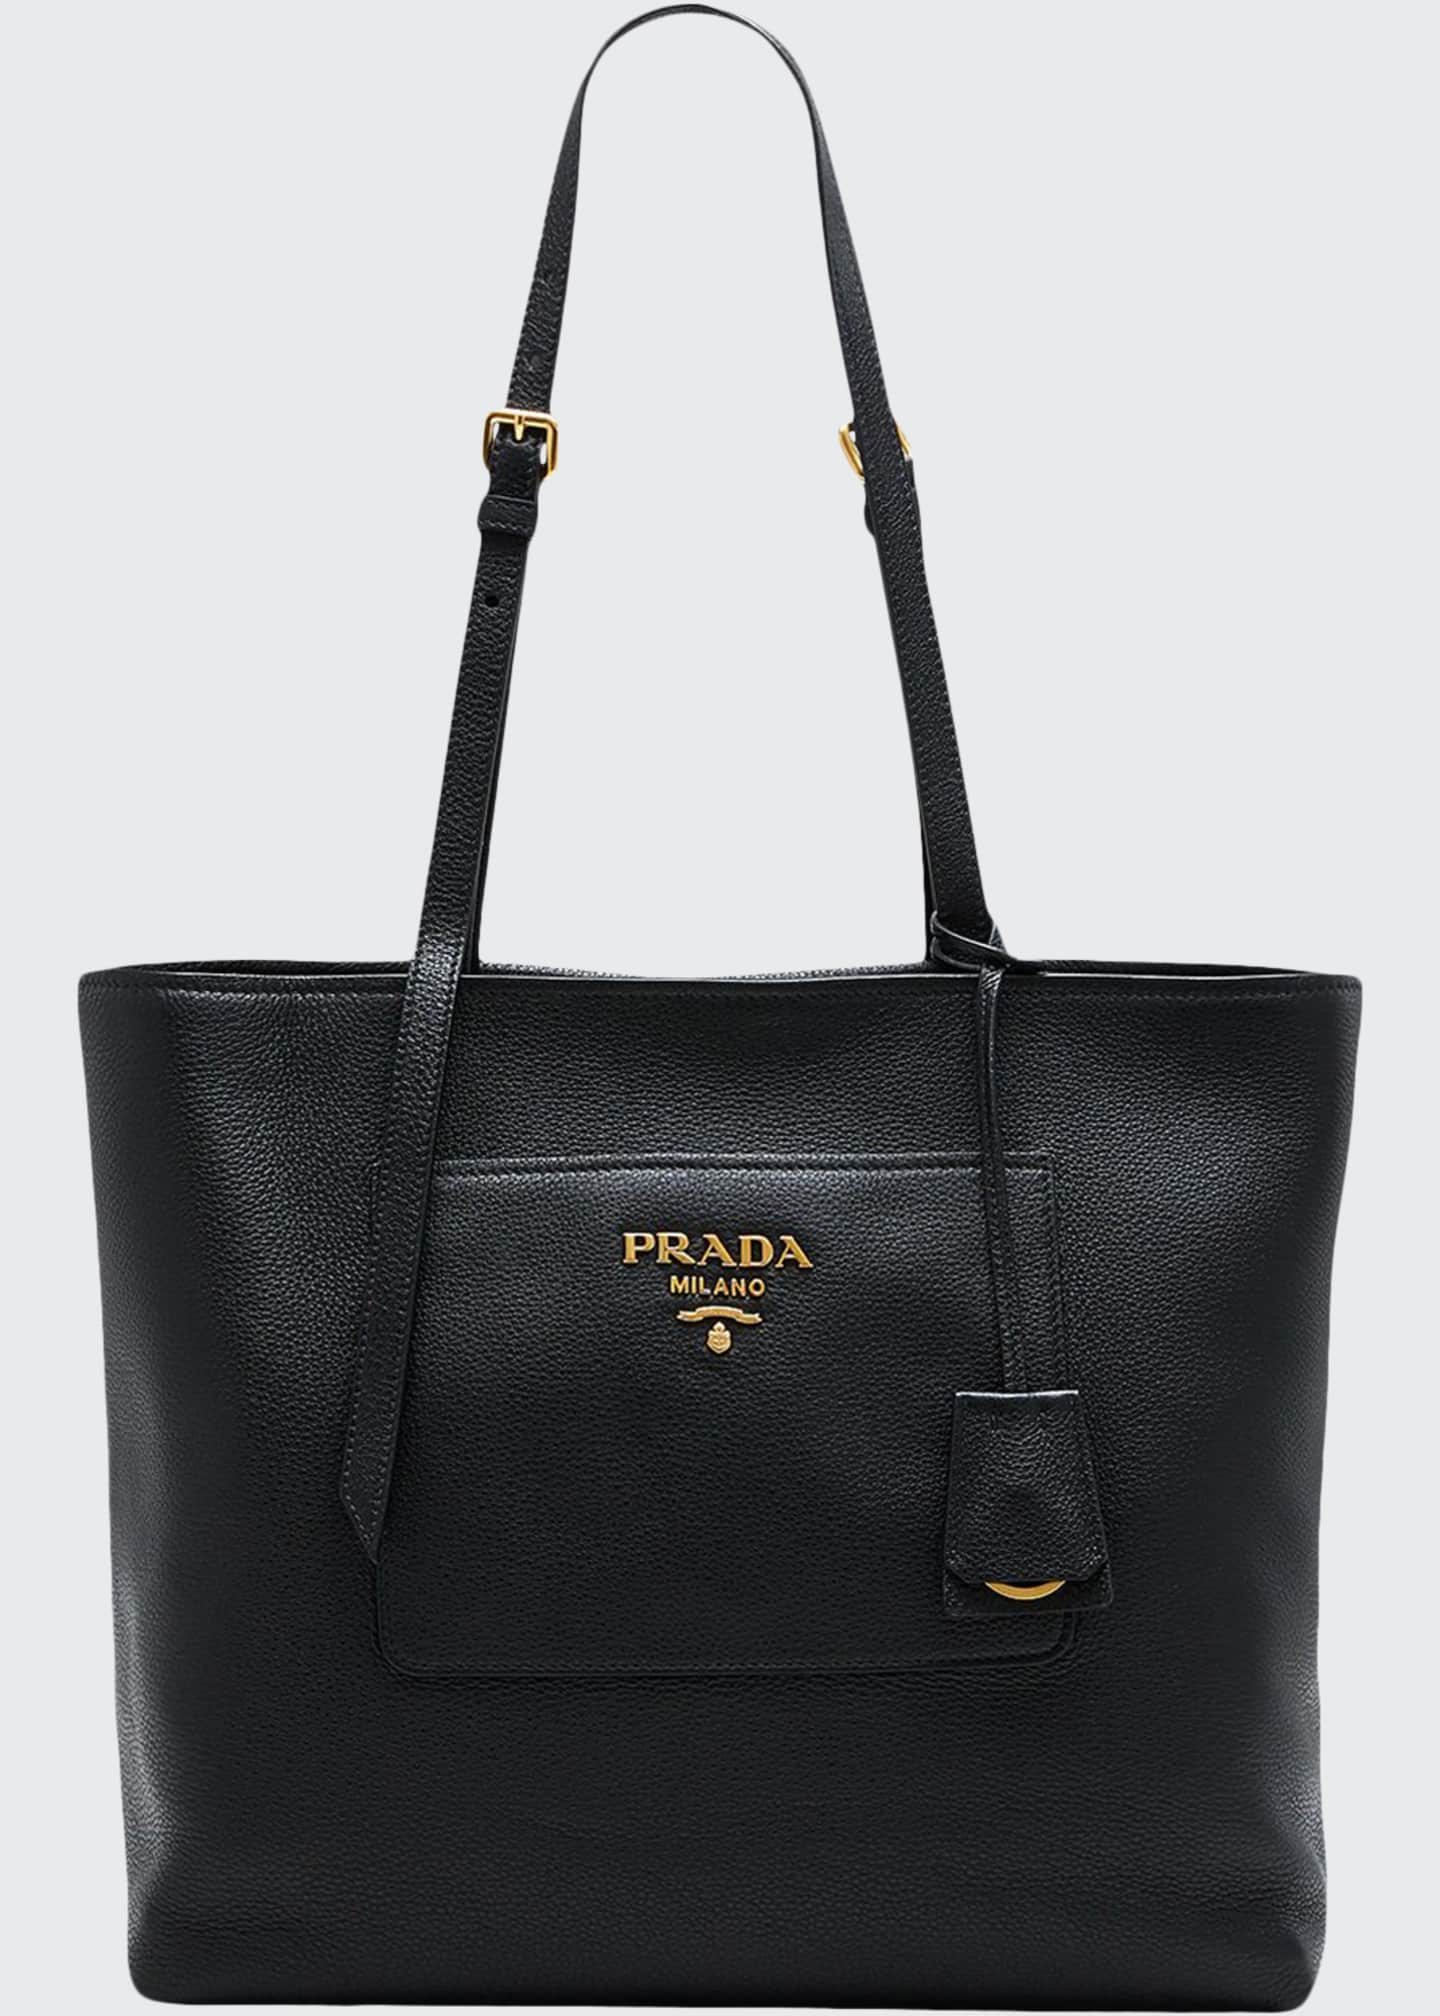 Prada Diano Small Leather Tote Bag